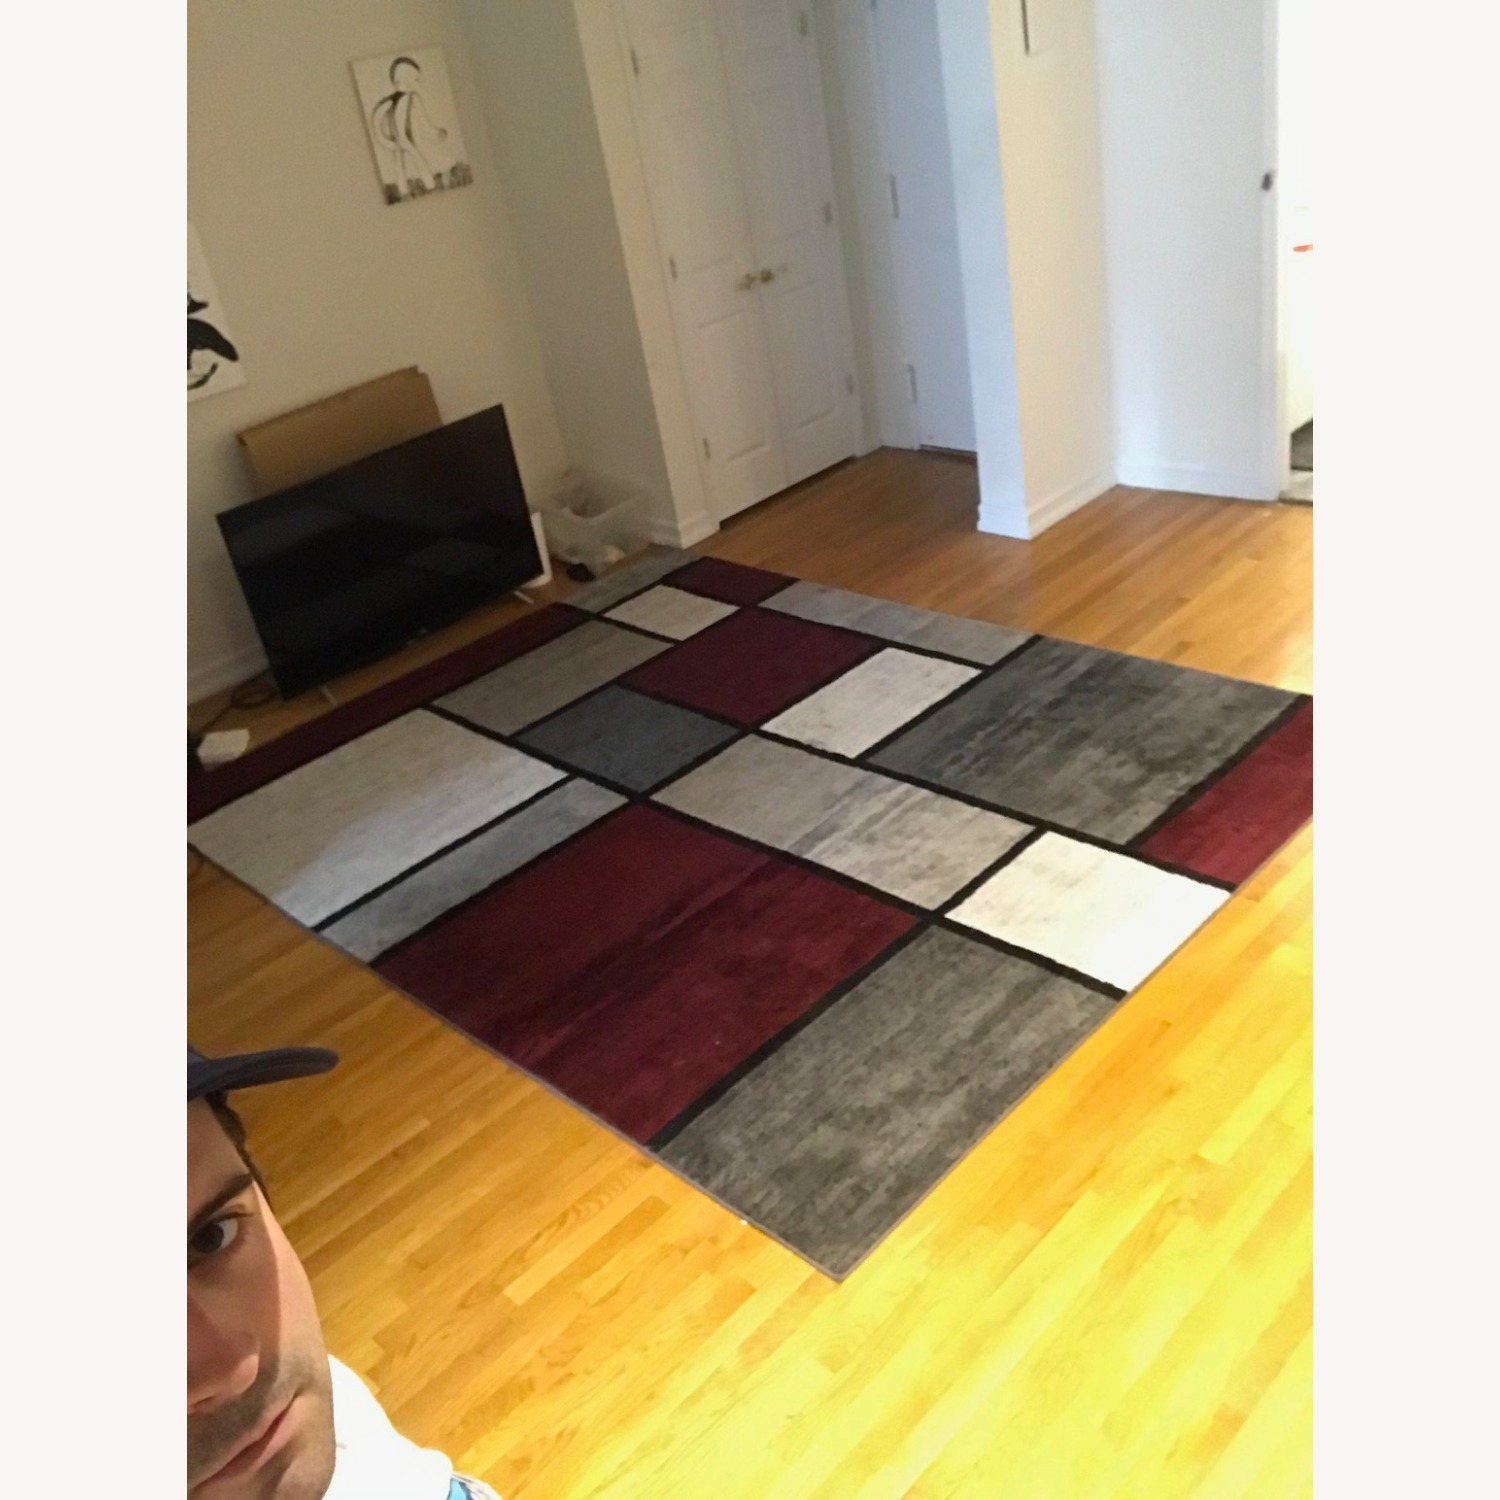 8' x 10' Red White and Grey Area Rug w Rug Pad - image-1